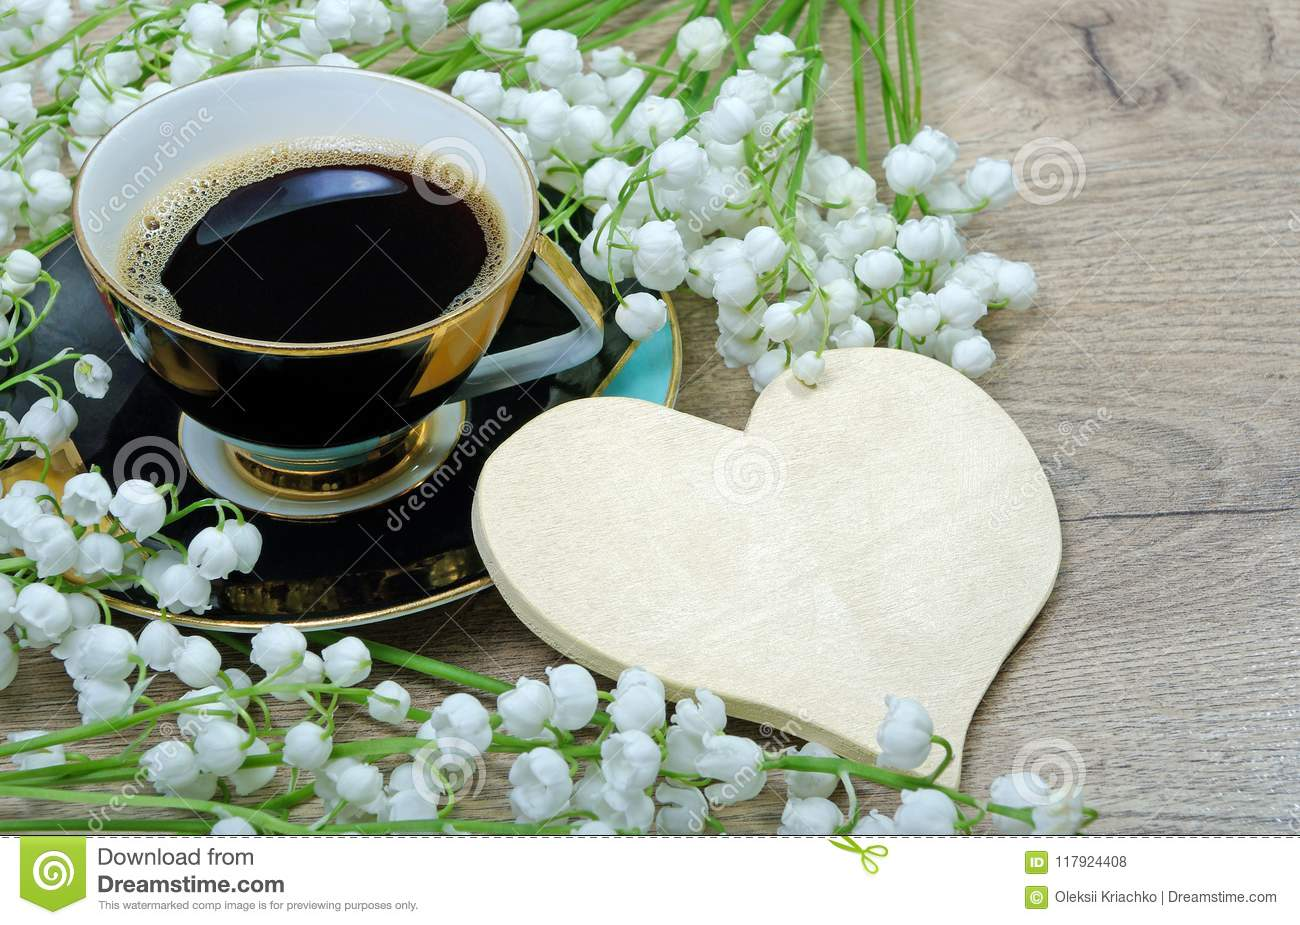 Good Morning Morning Coffee And Lily Of The Valley Flower On A Wooden Table Stock Photo Image Of Background Beauty 117924408